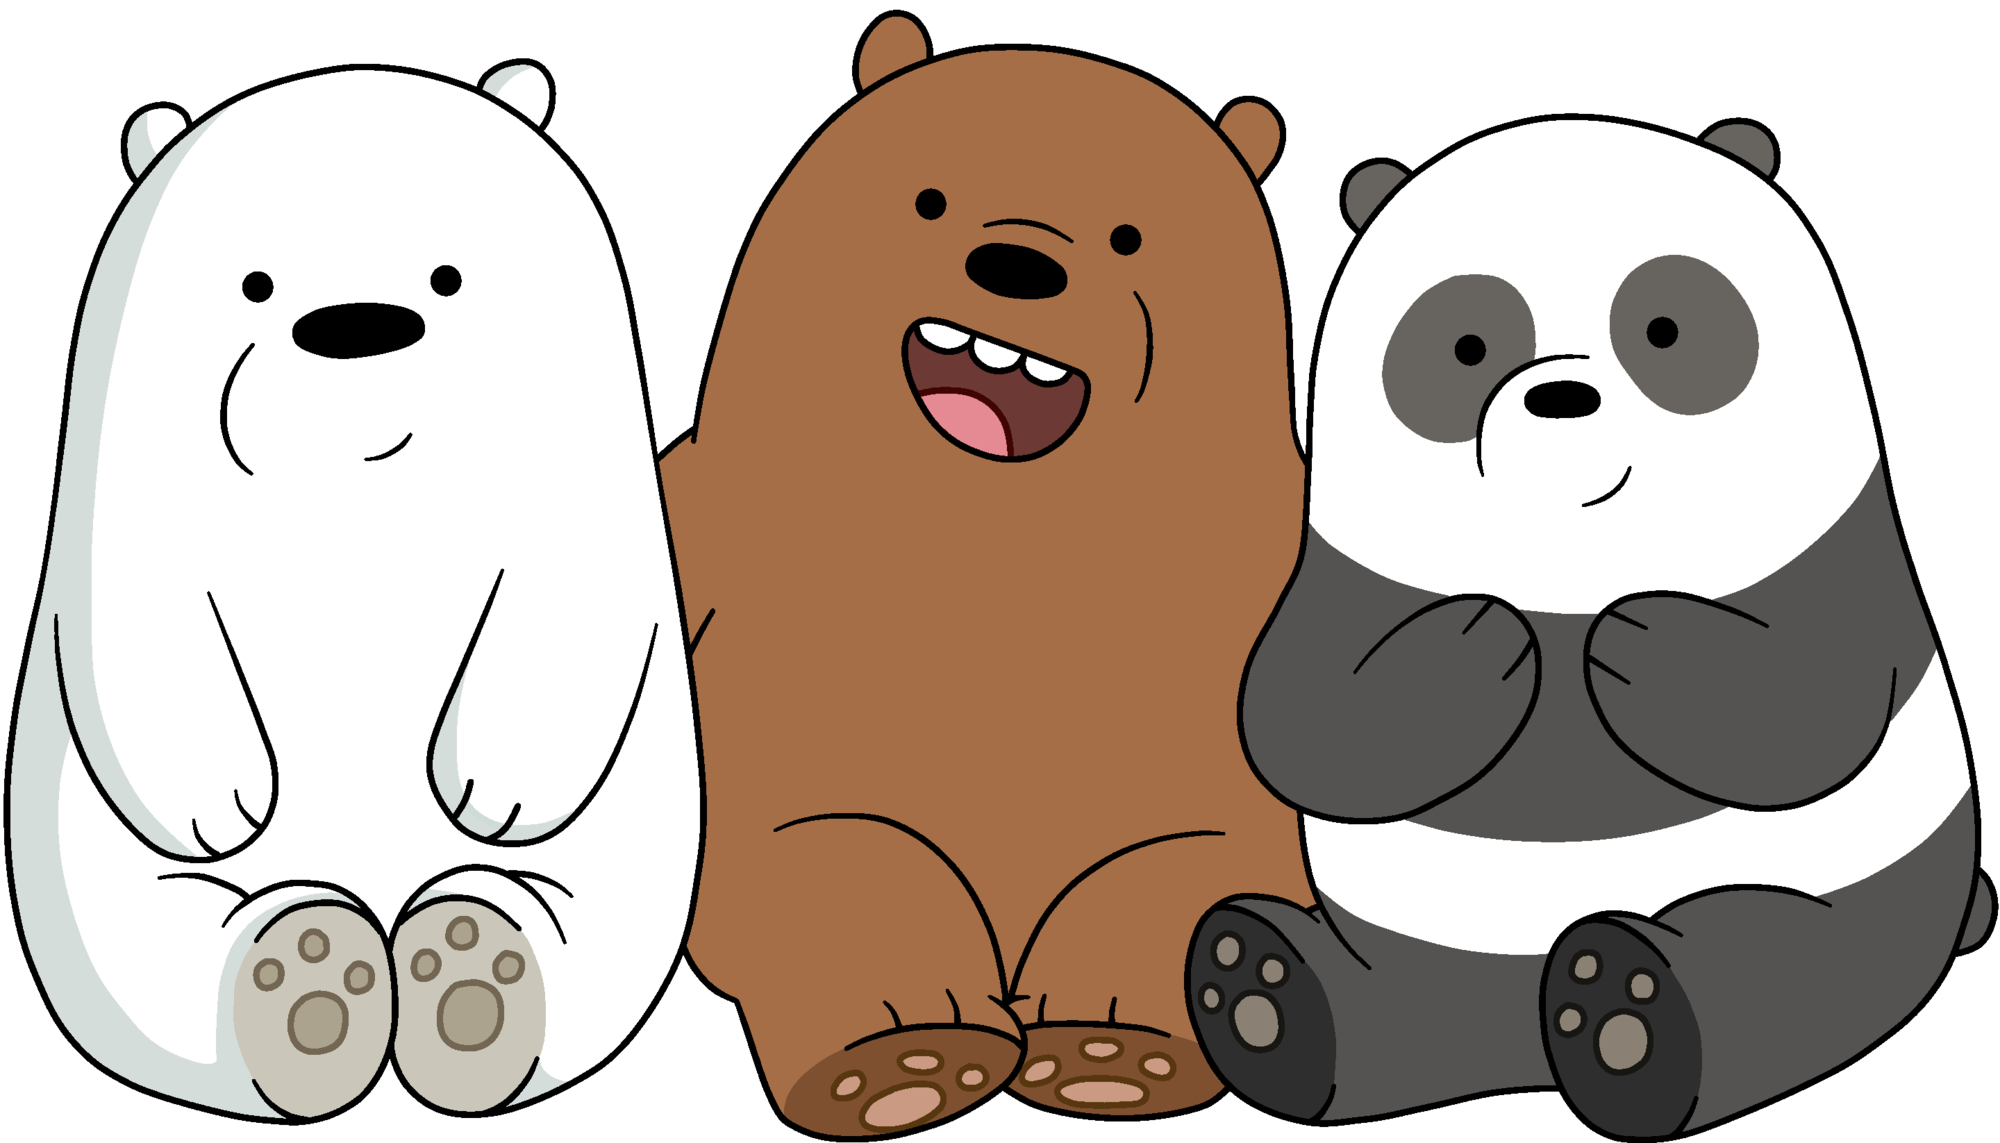 Vignette2 Wikia Nocookie Net Webarebears Images F F3 Cubs Png Revision Latest Scale To Width Down 2000 Cb 20 Bear Wallpaper We Bare Bears Wallpapers Bare Bears